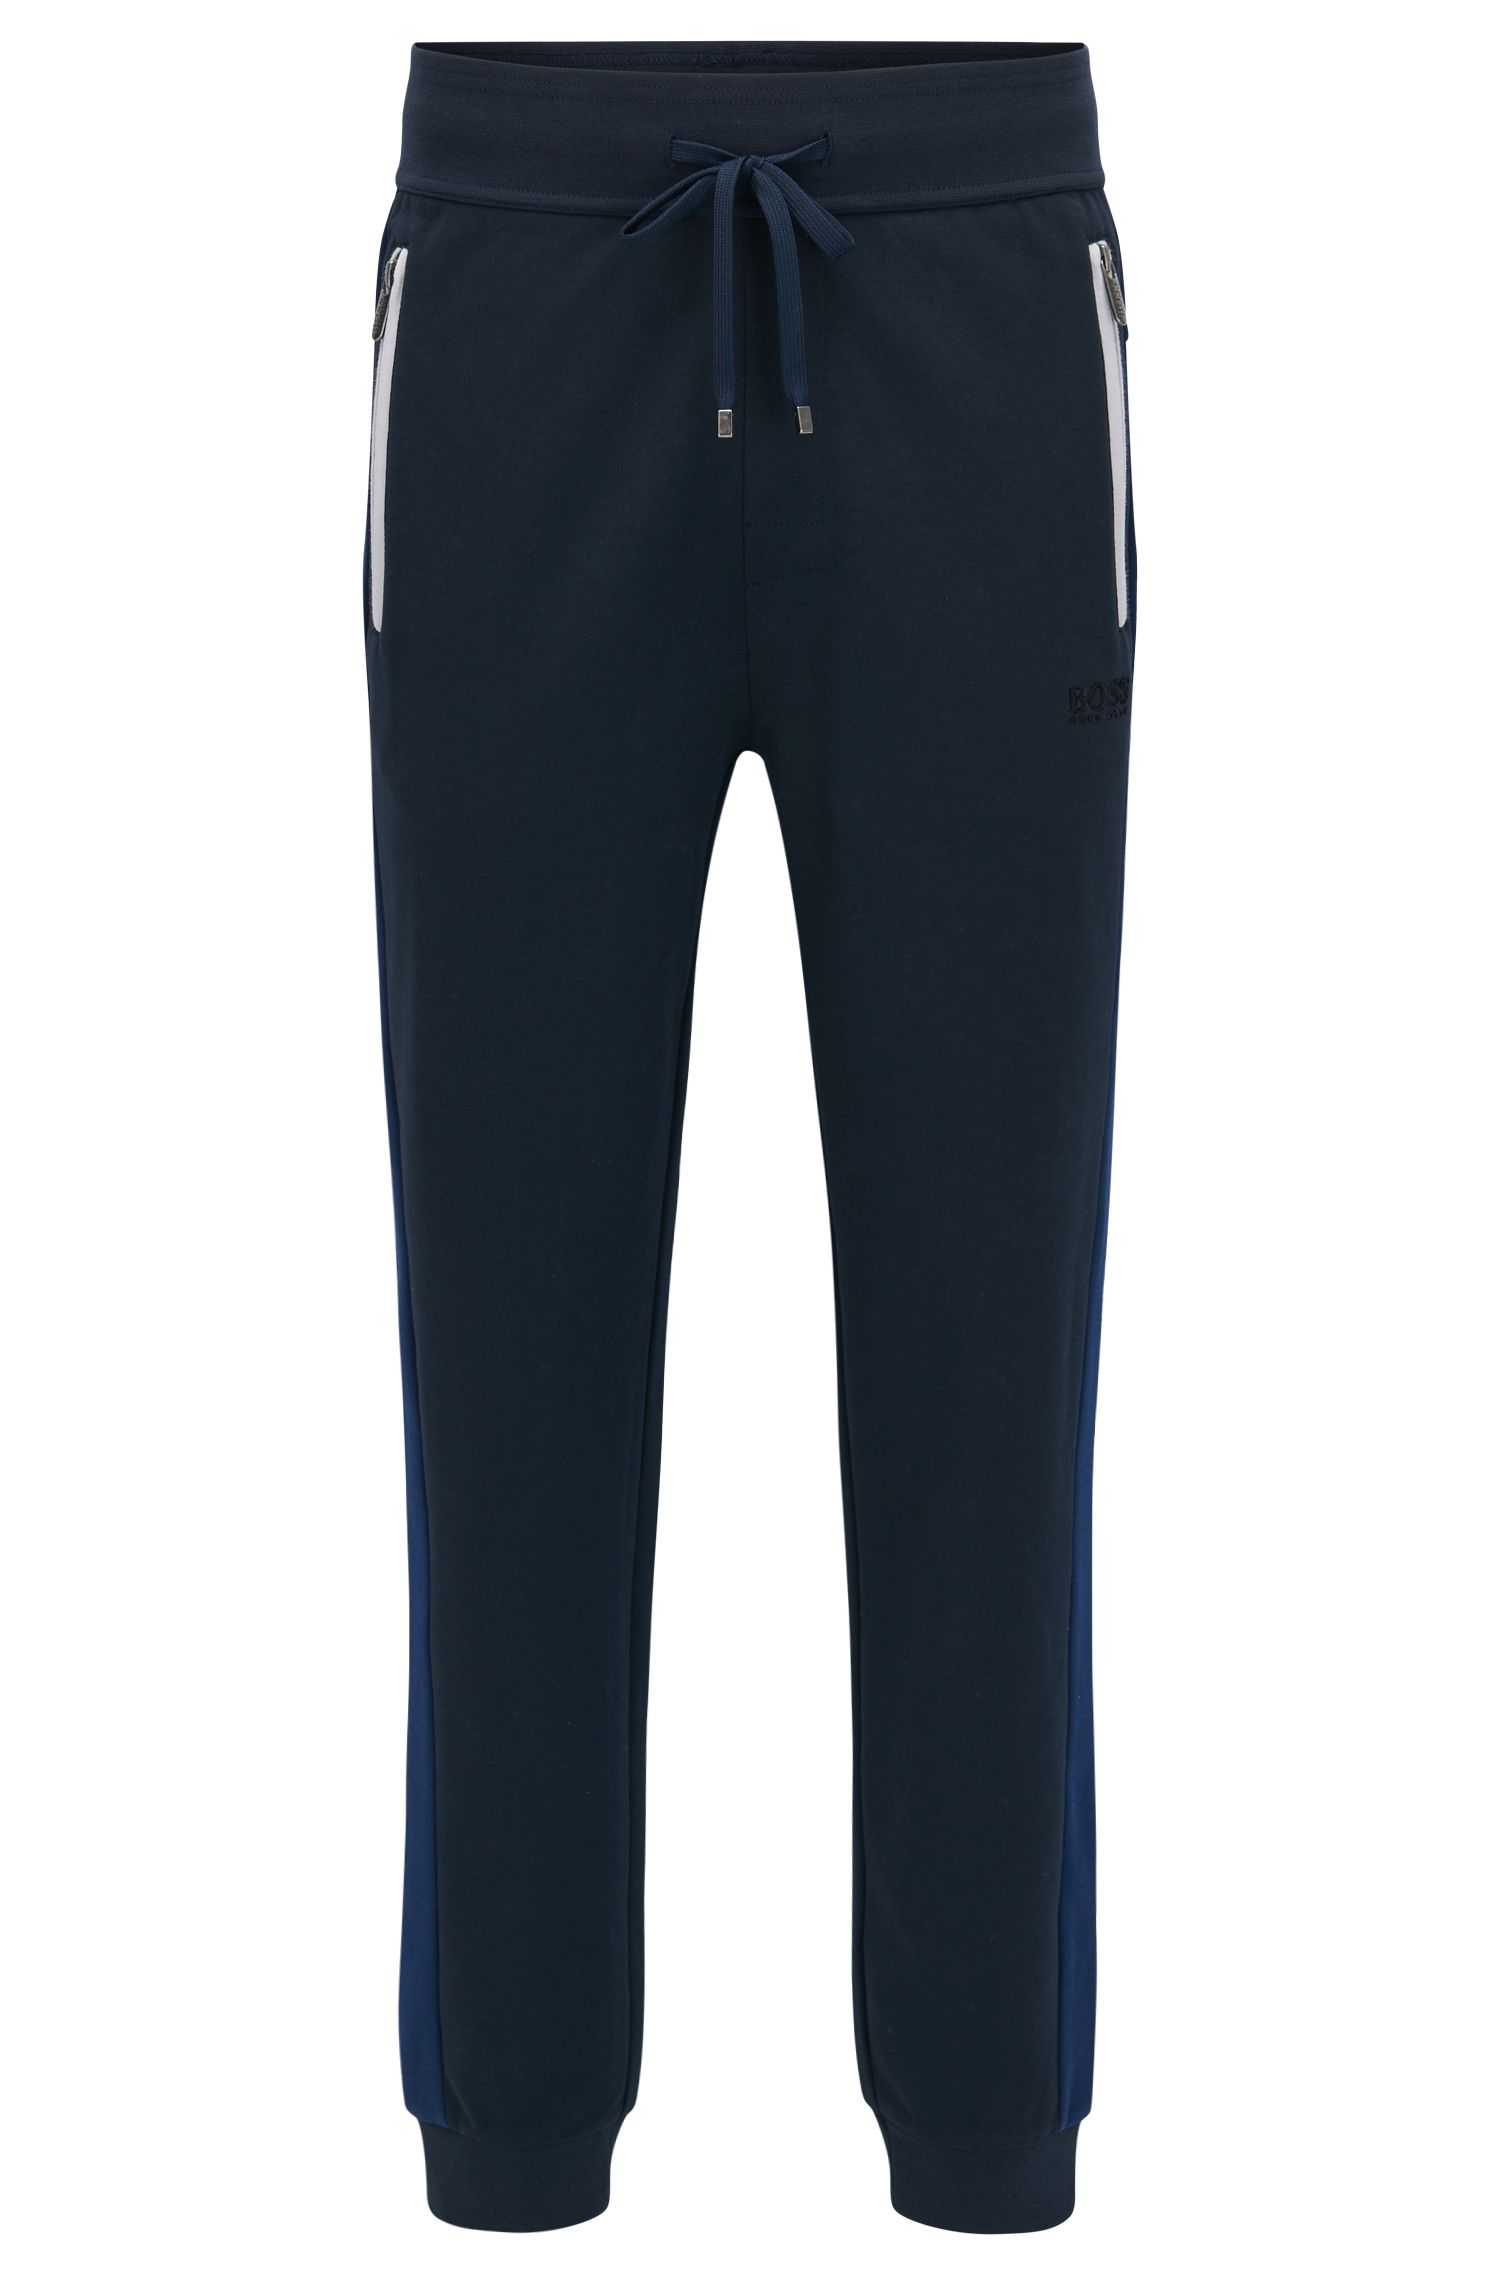 Cuffed jogging bottoms in a cotton-blend pique with contrast accents